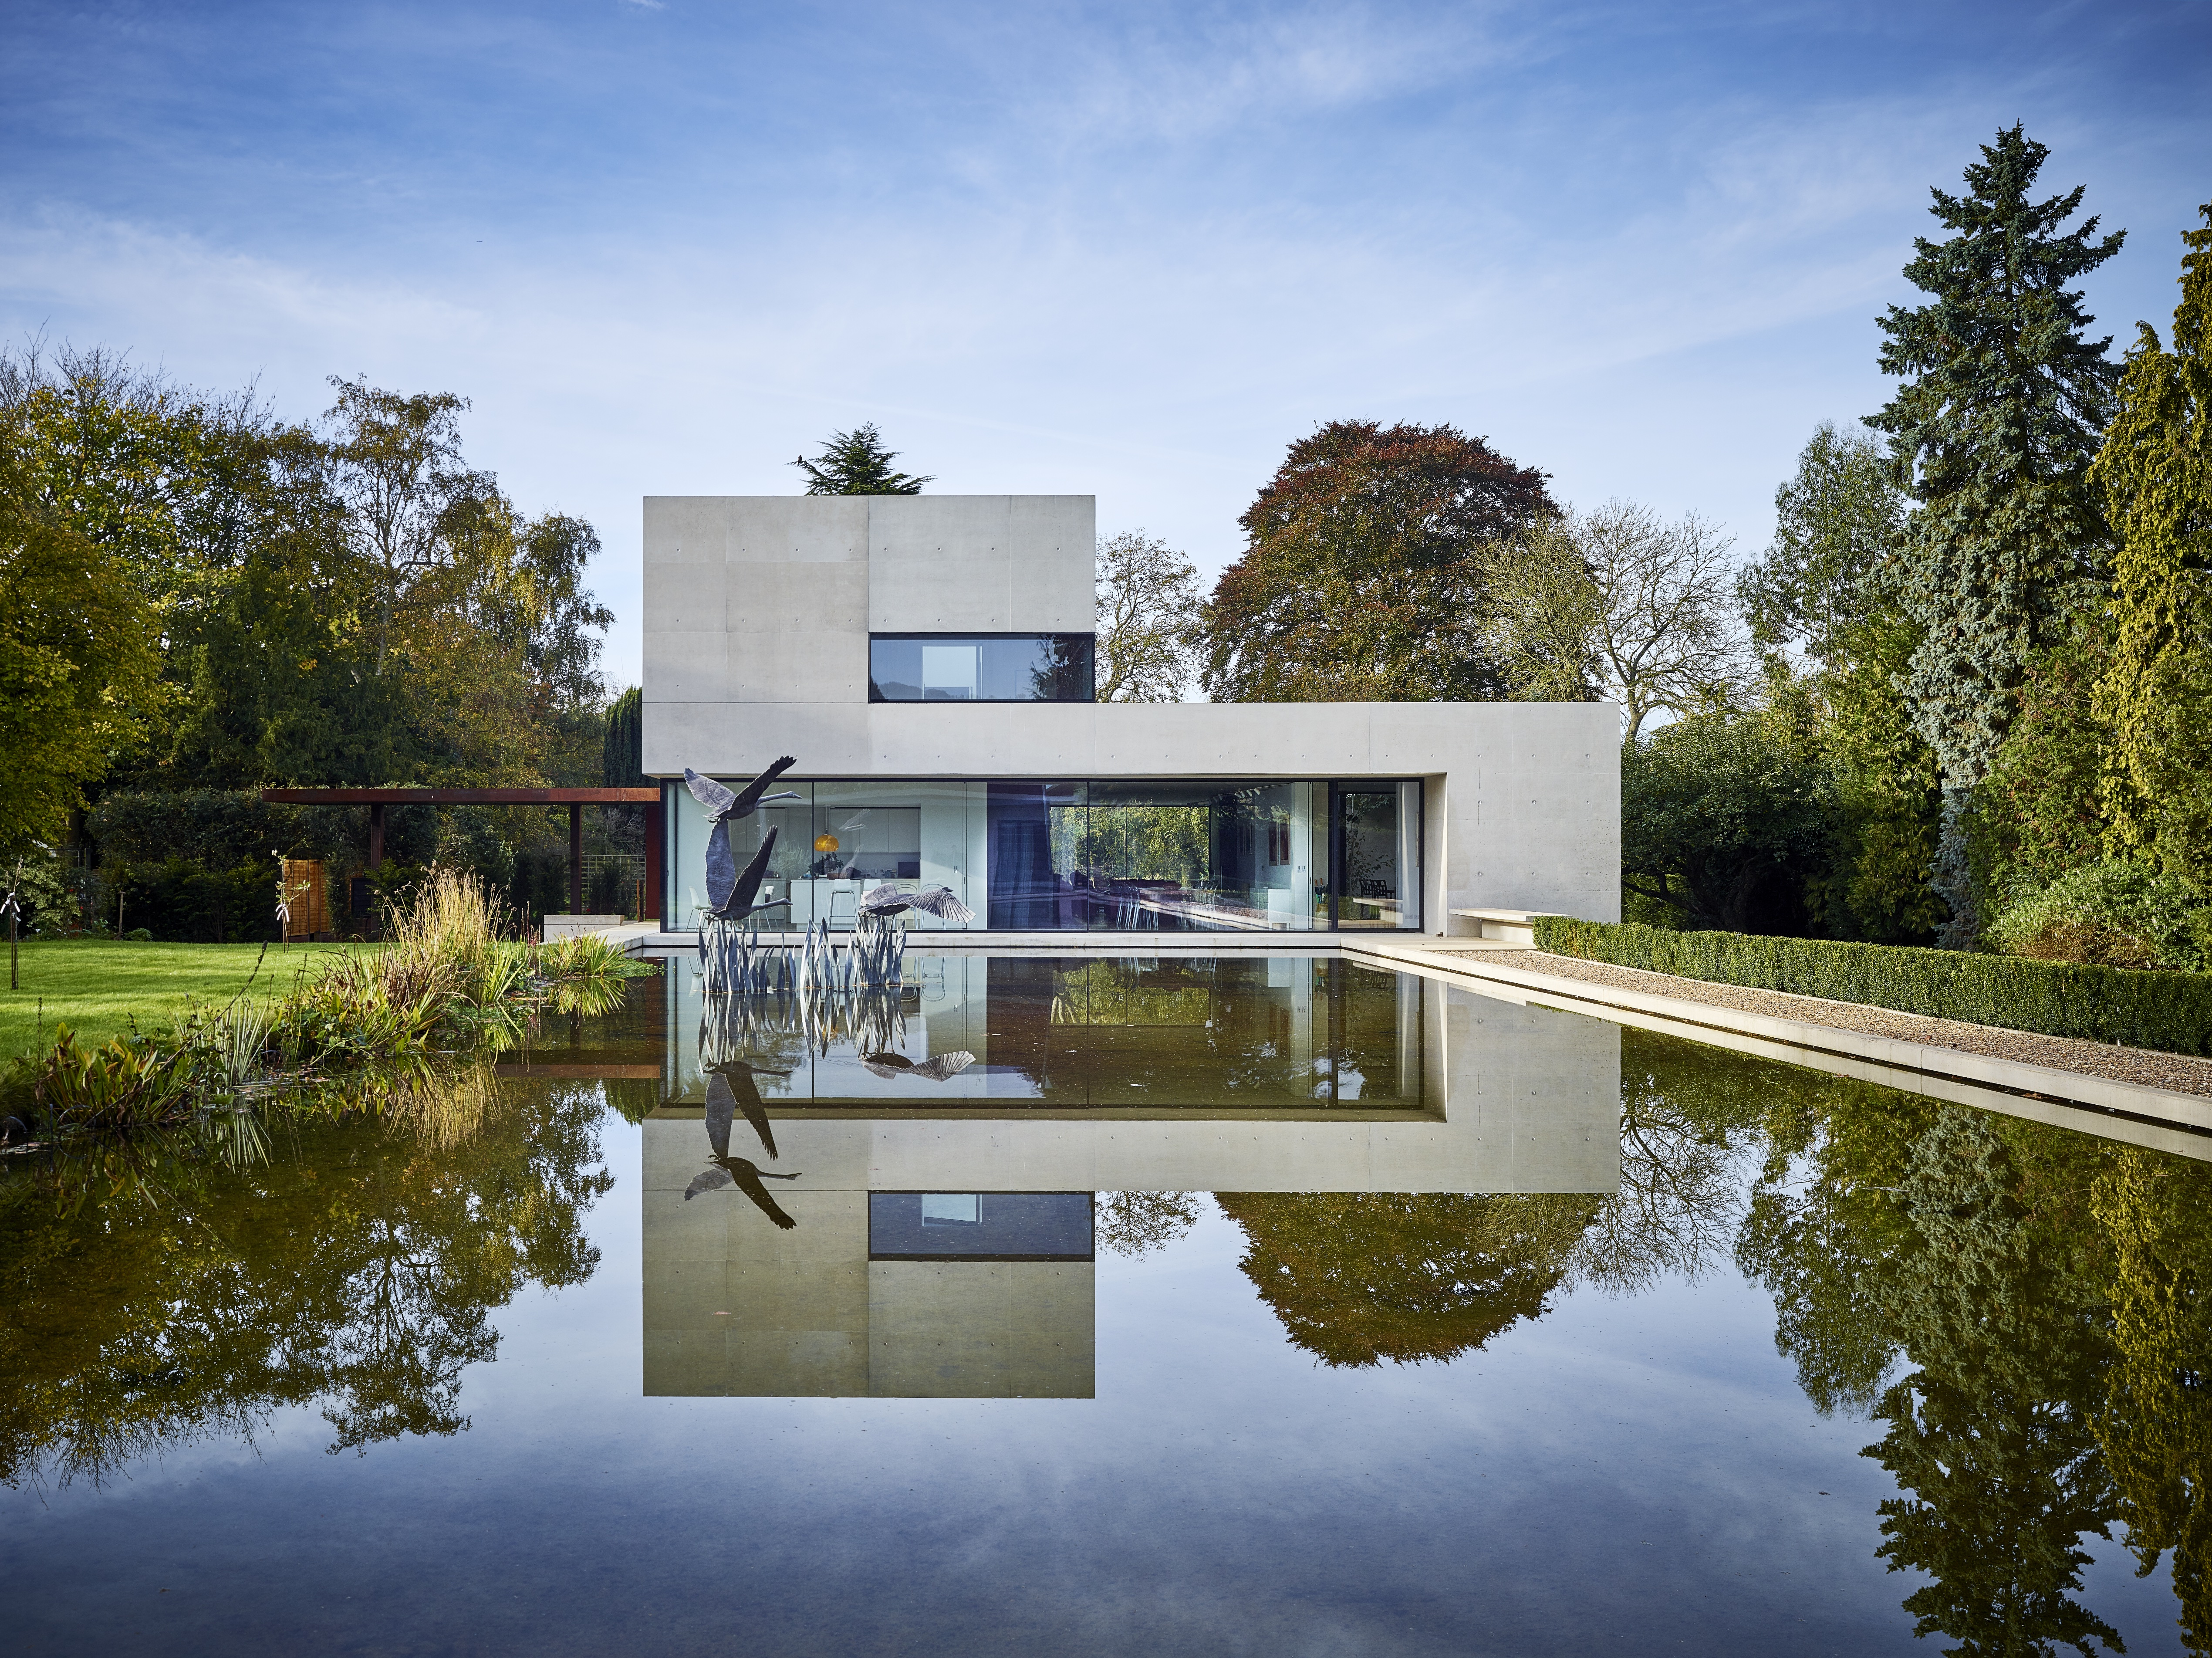 Pheasants House Shortlisted For Riba House Of The Year